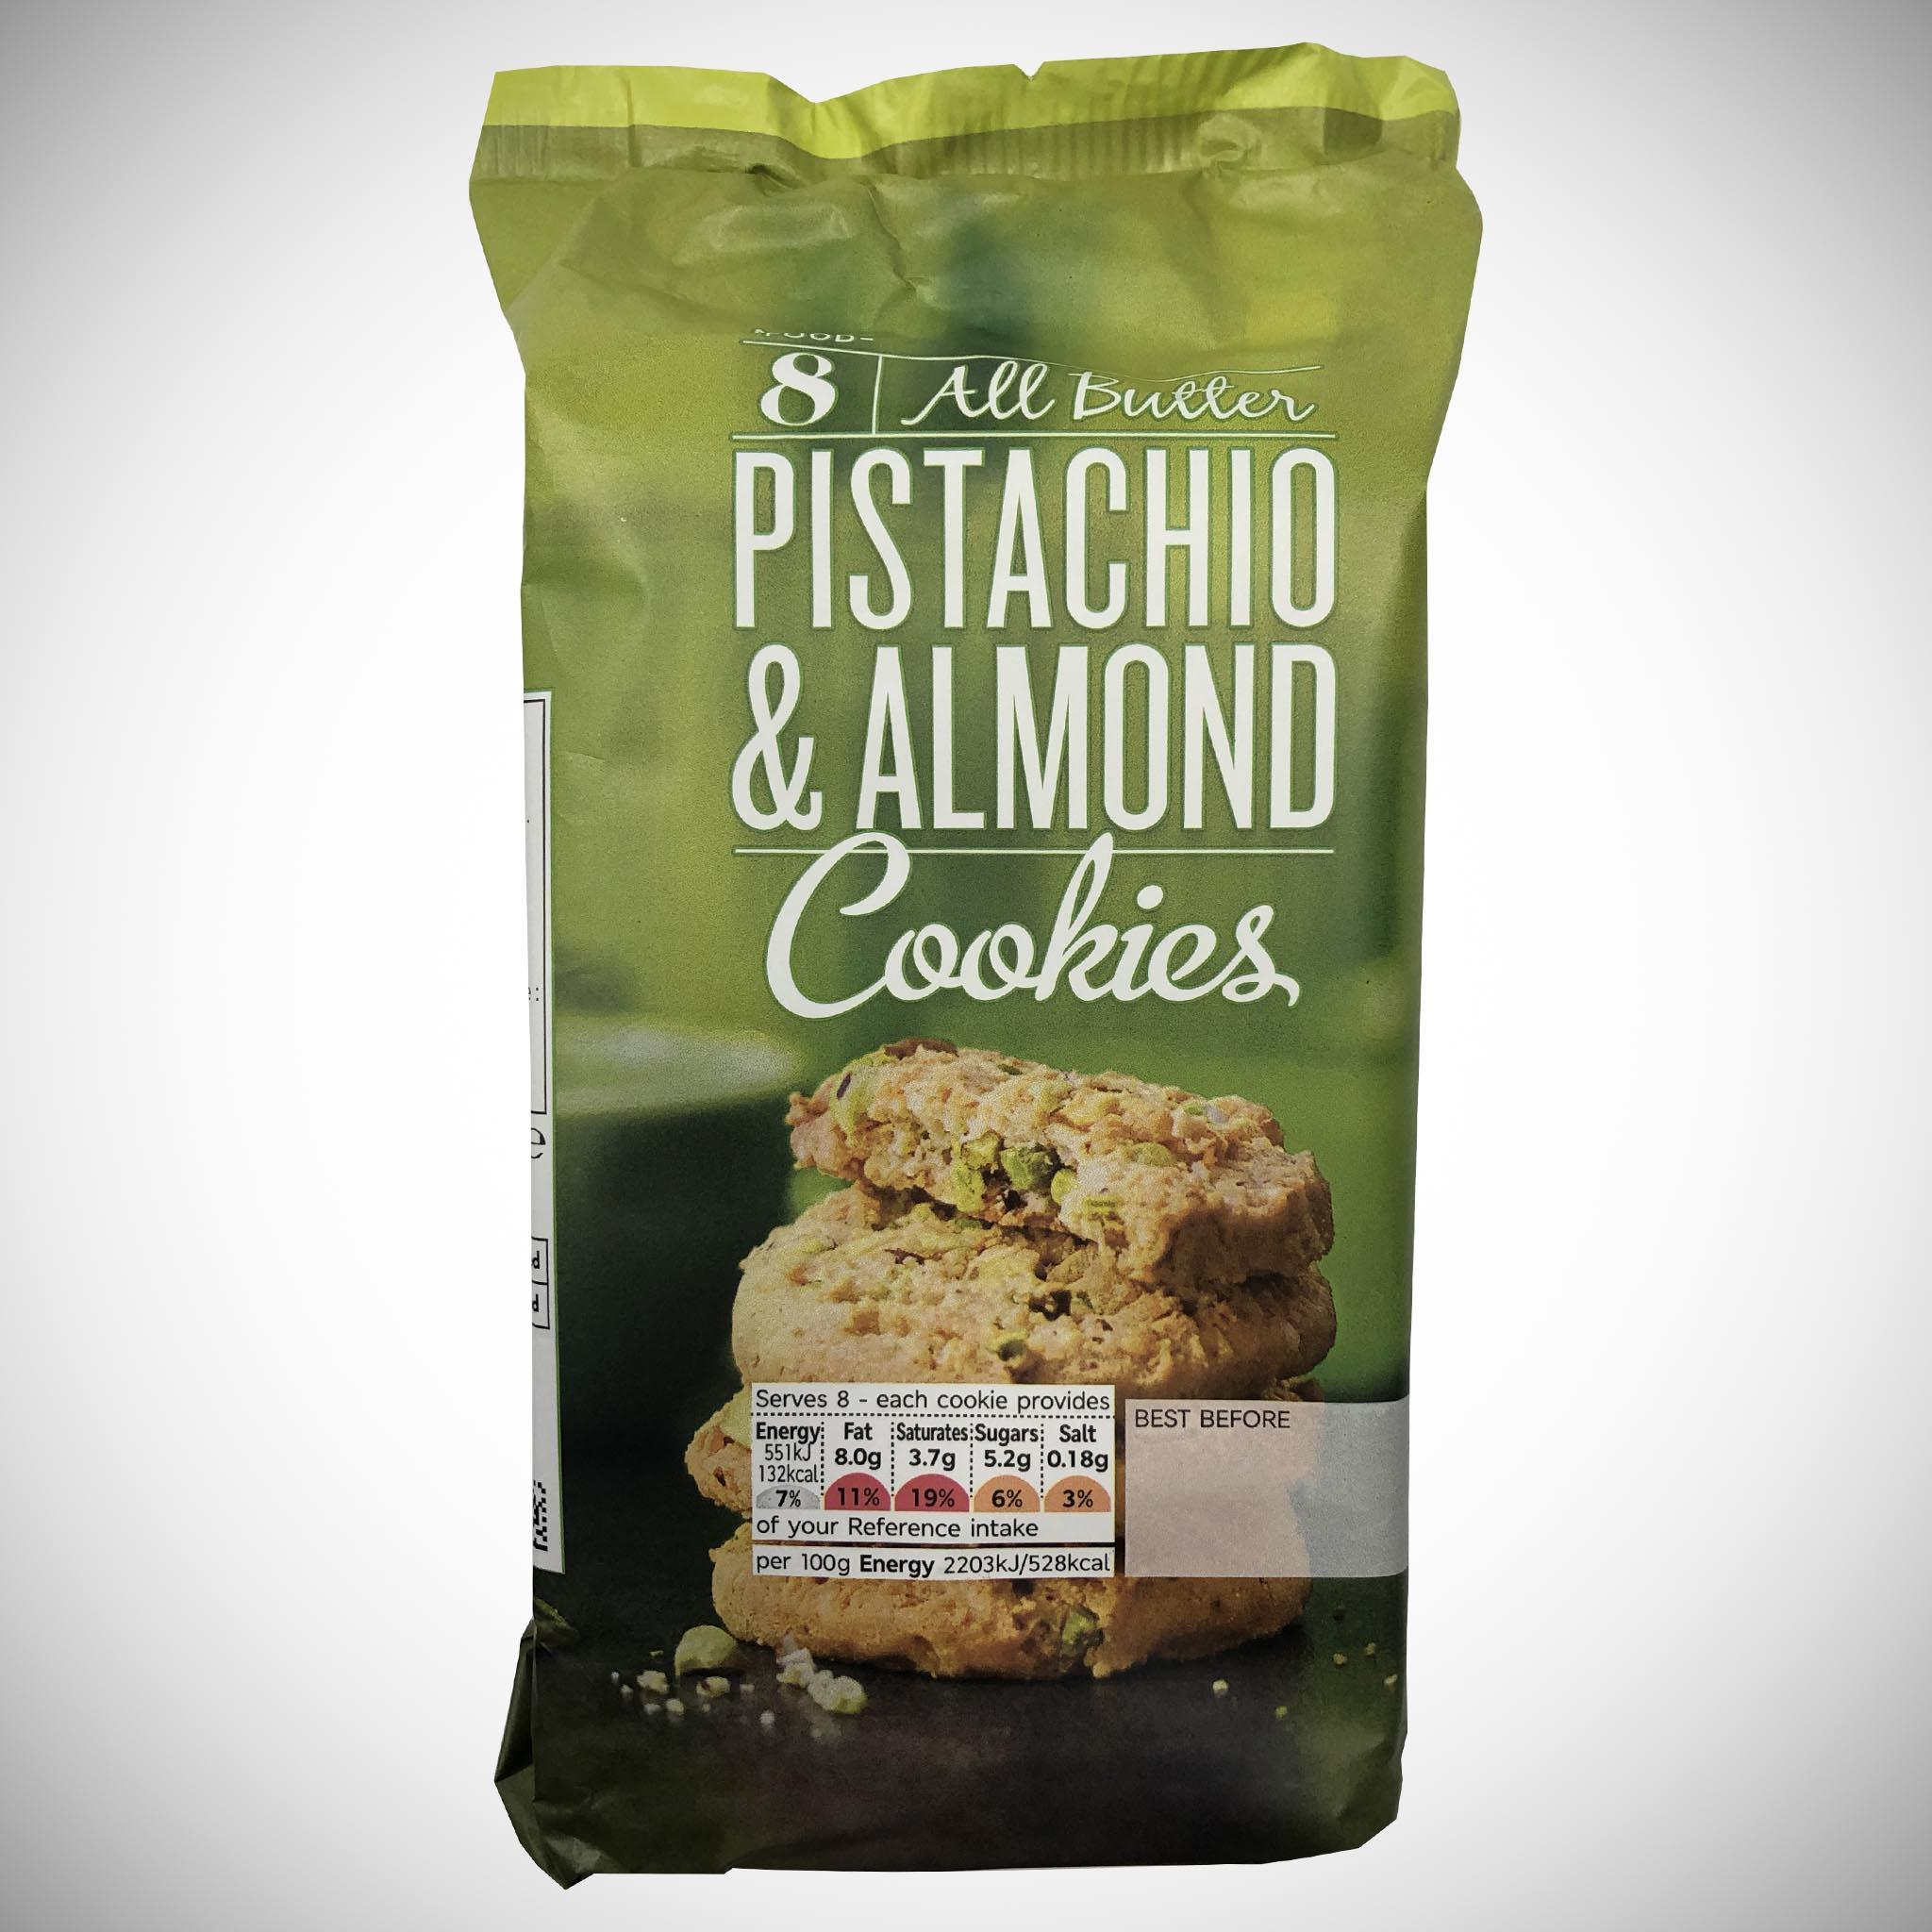 All Butter Pistachio & Almond Cookies 200g